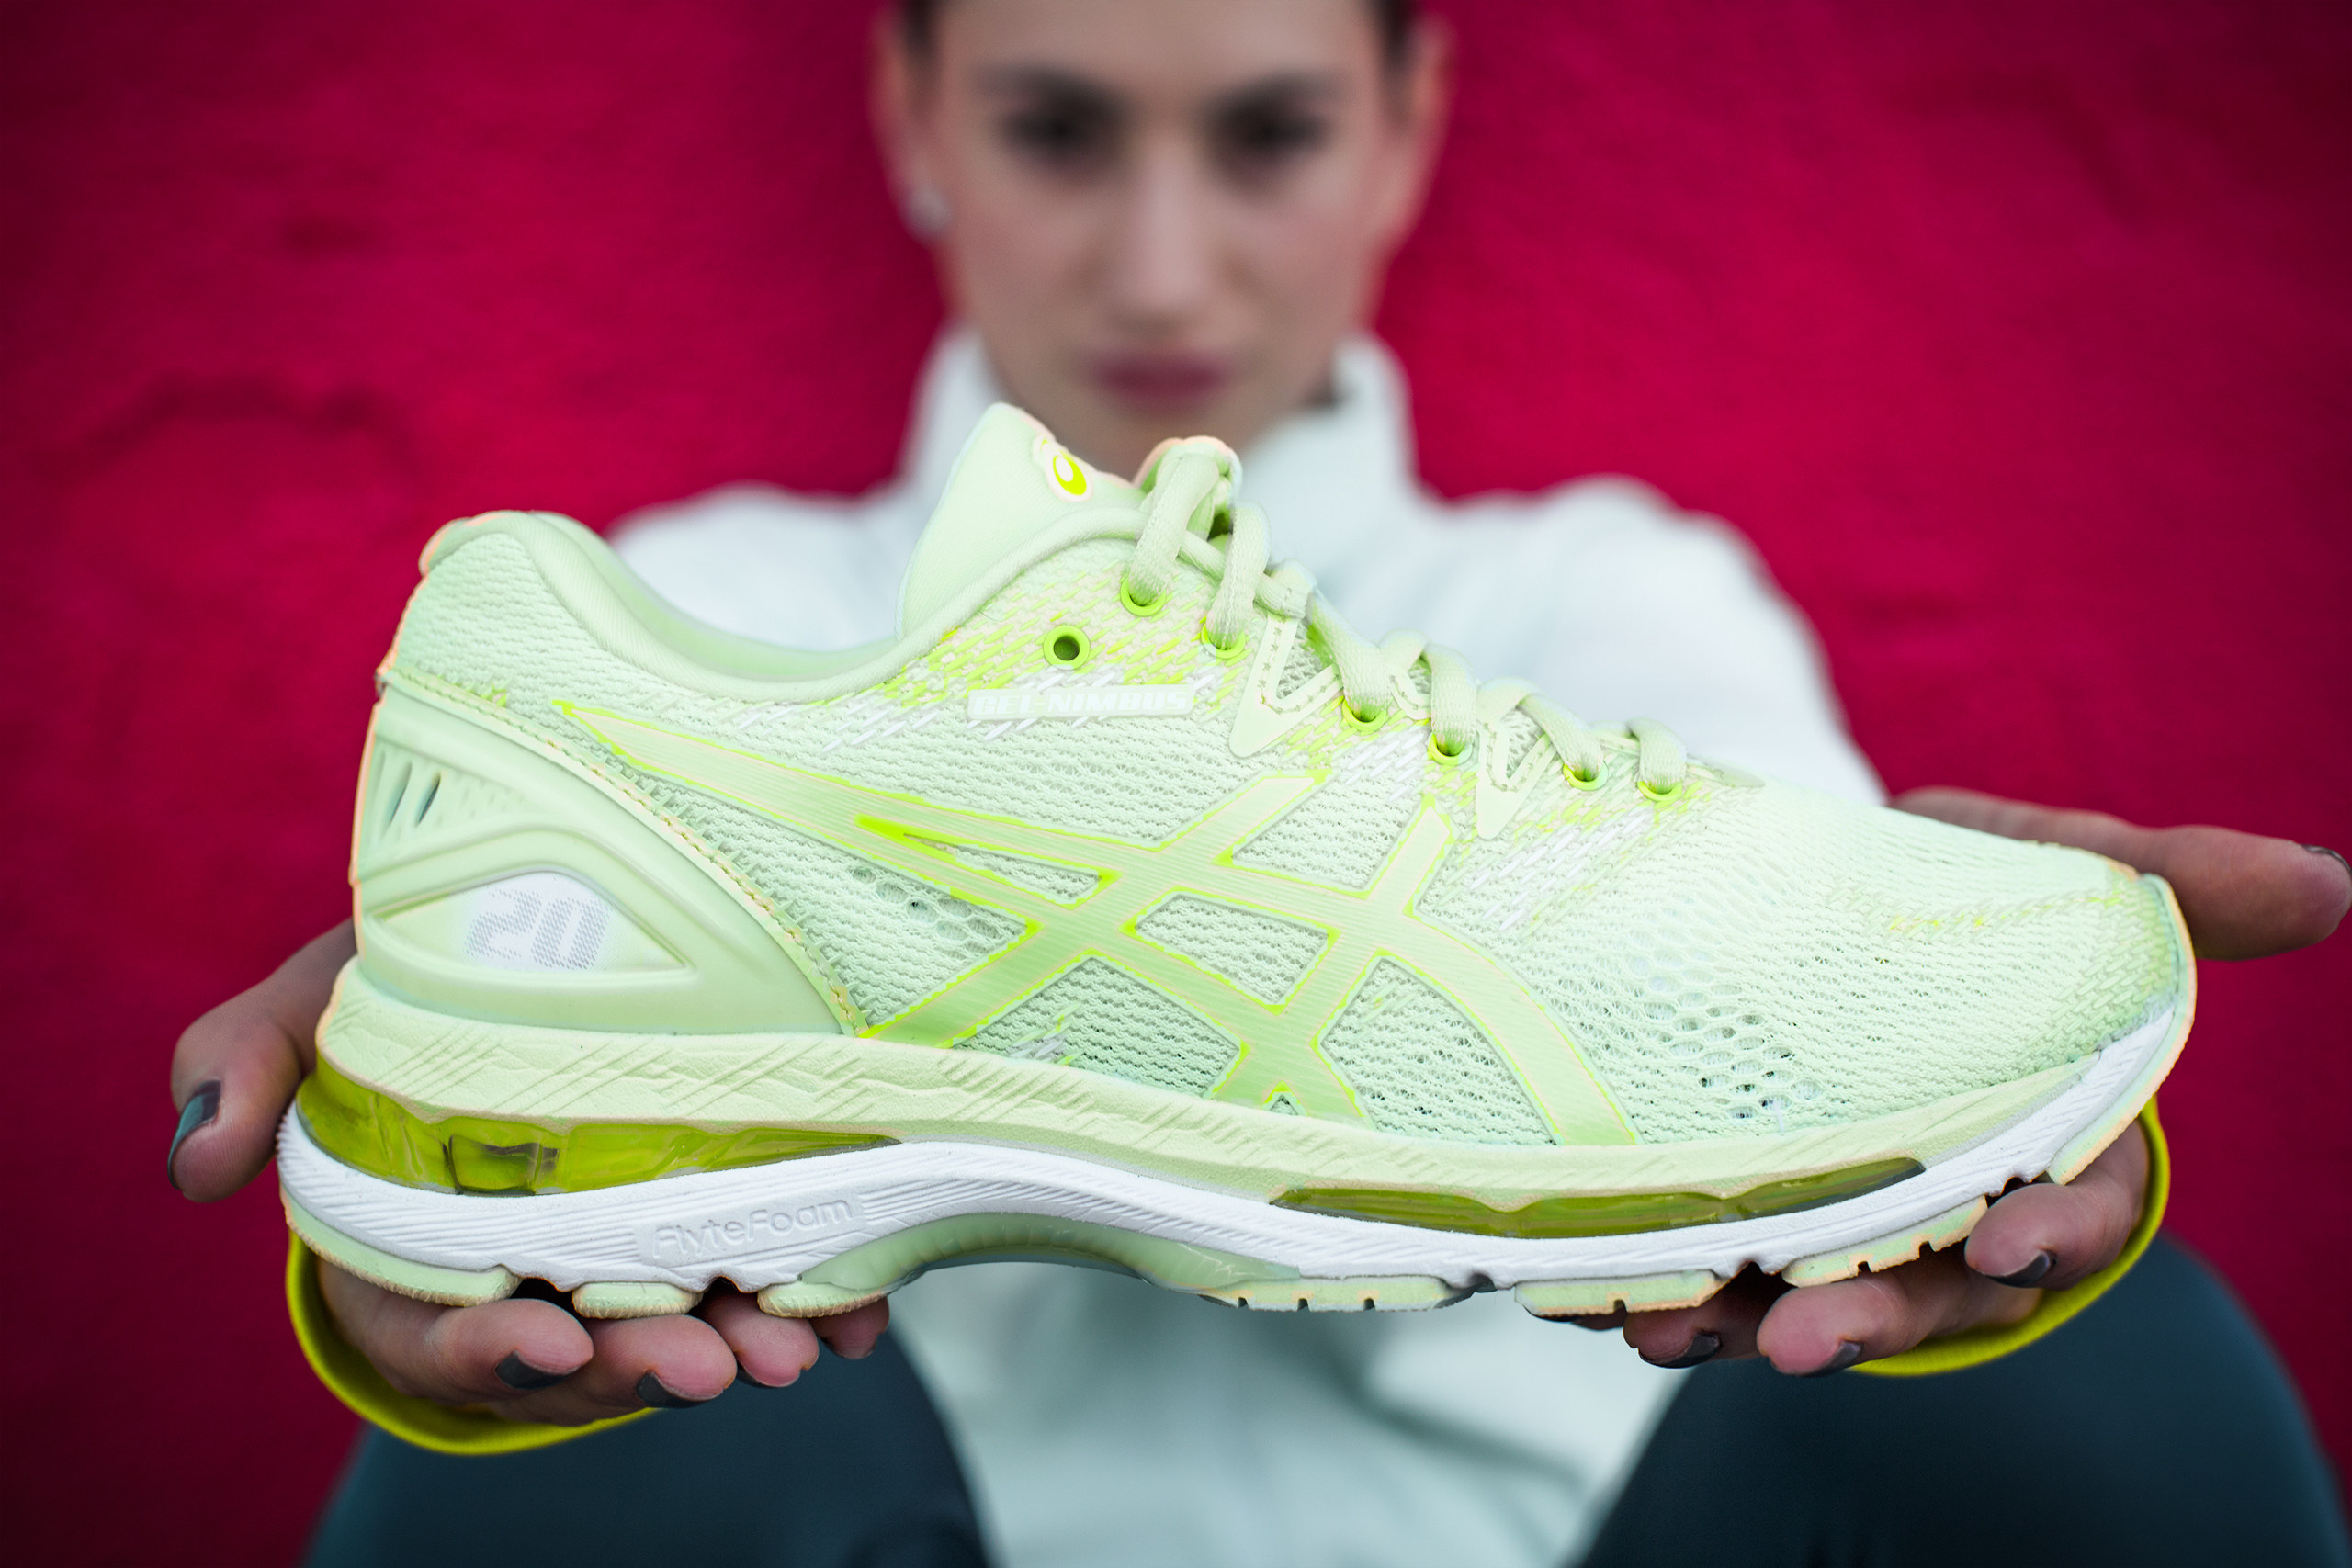 Asics gel nimbus 20 shoe